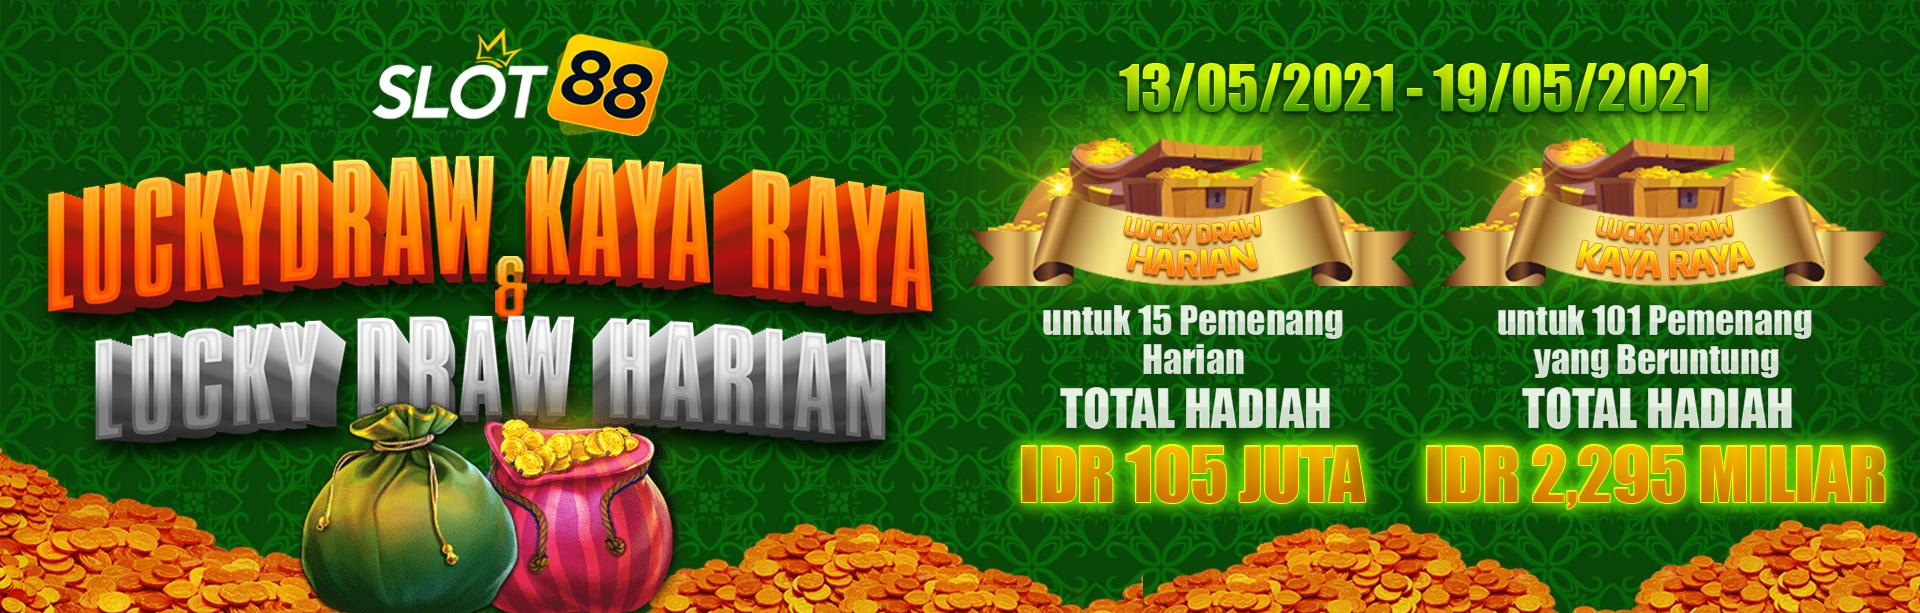 Slot88 Kaya Raya Lucky Draw